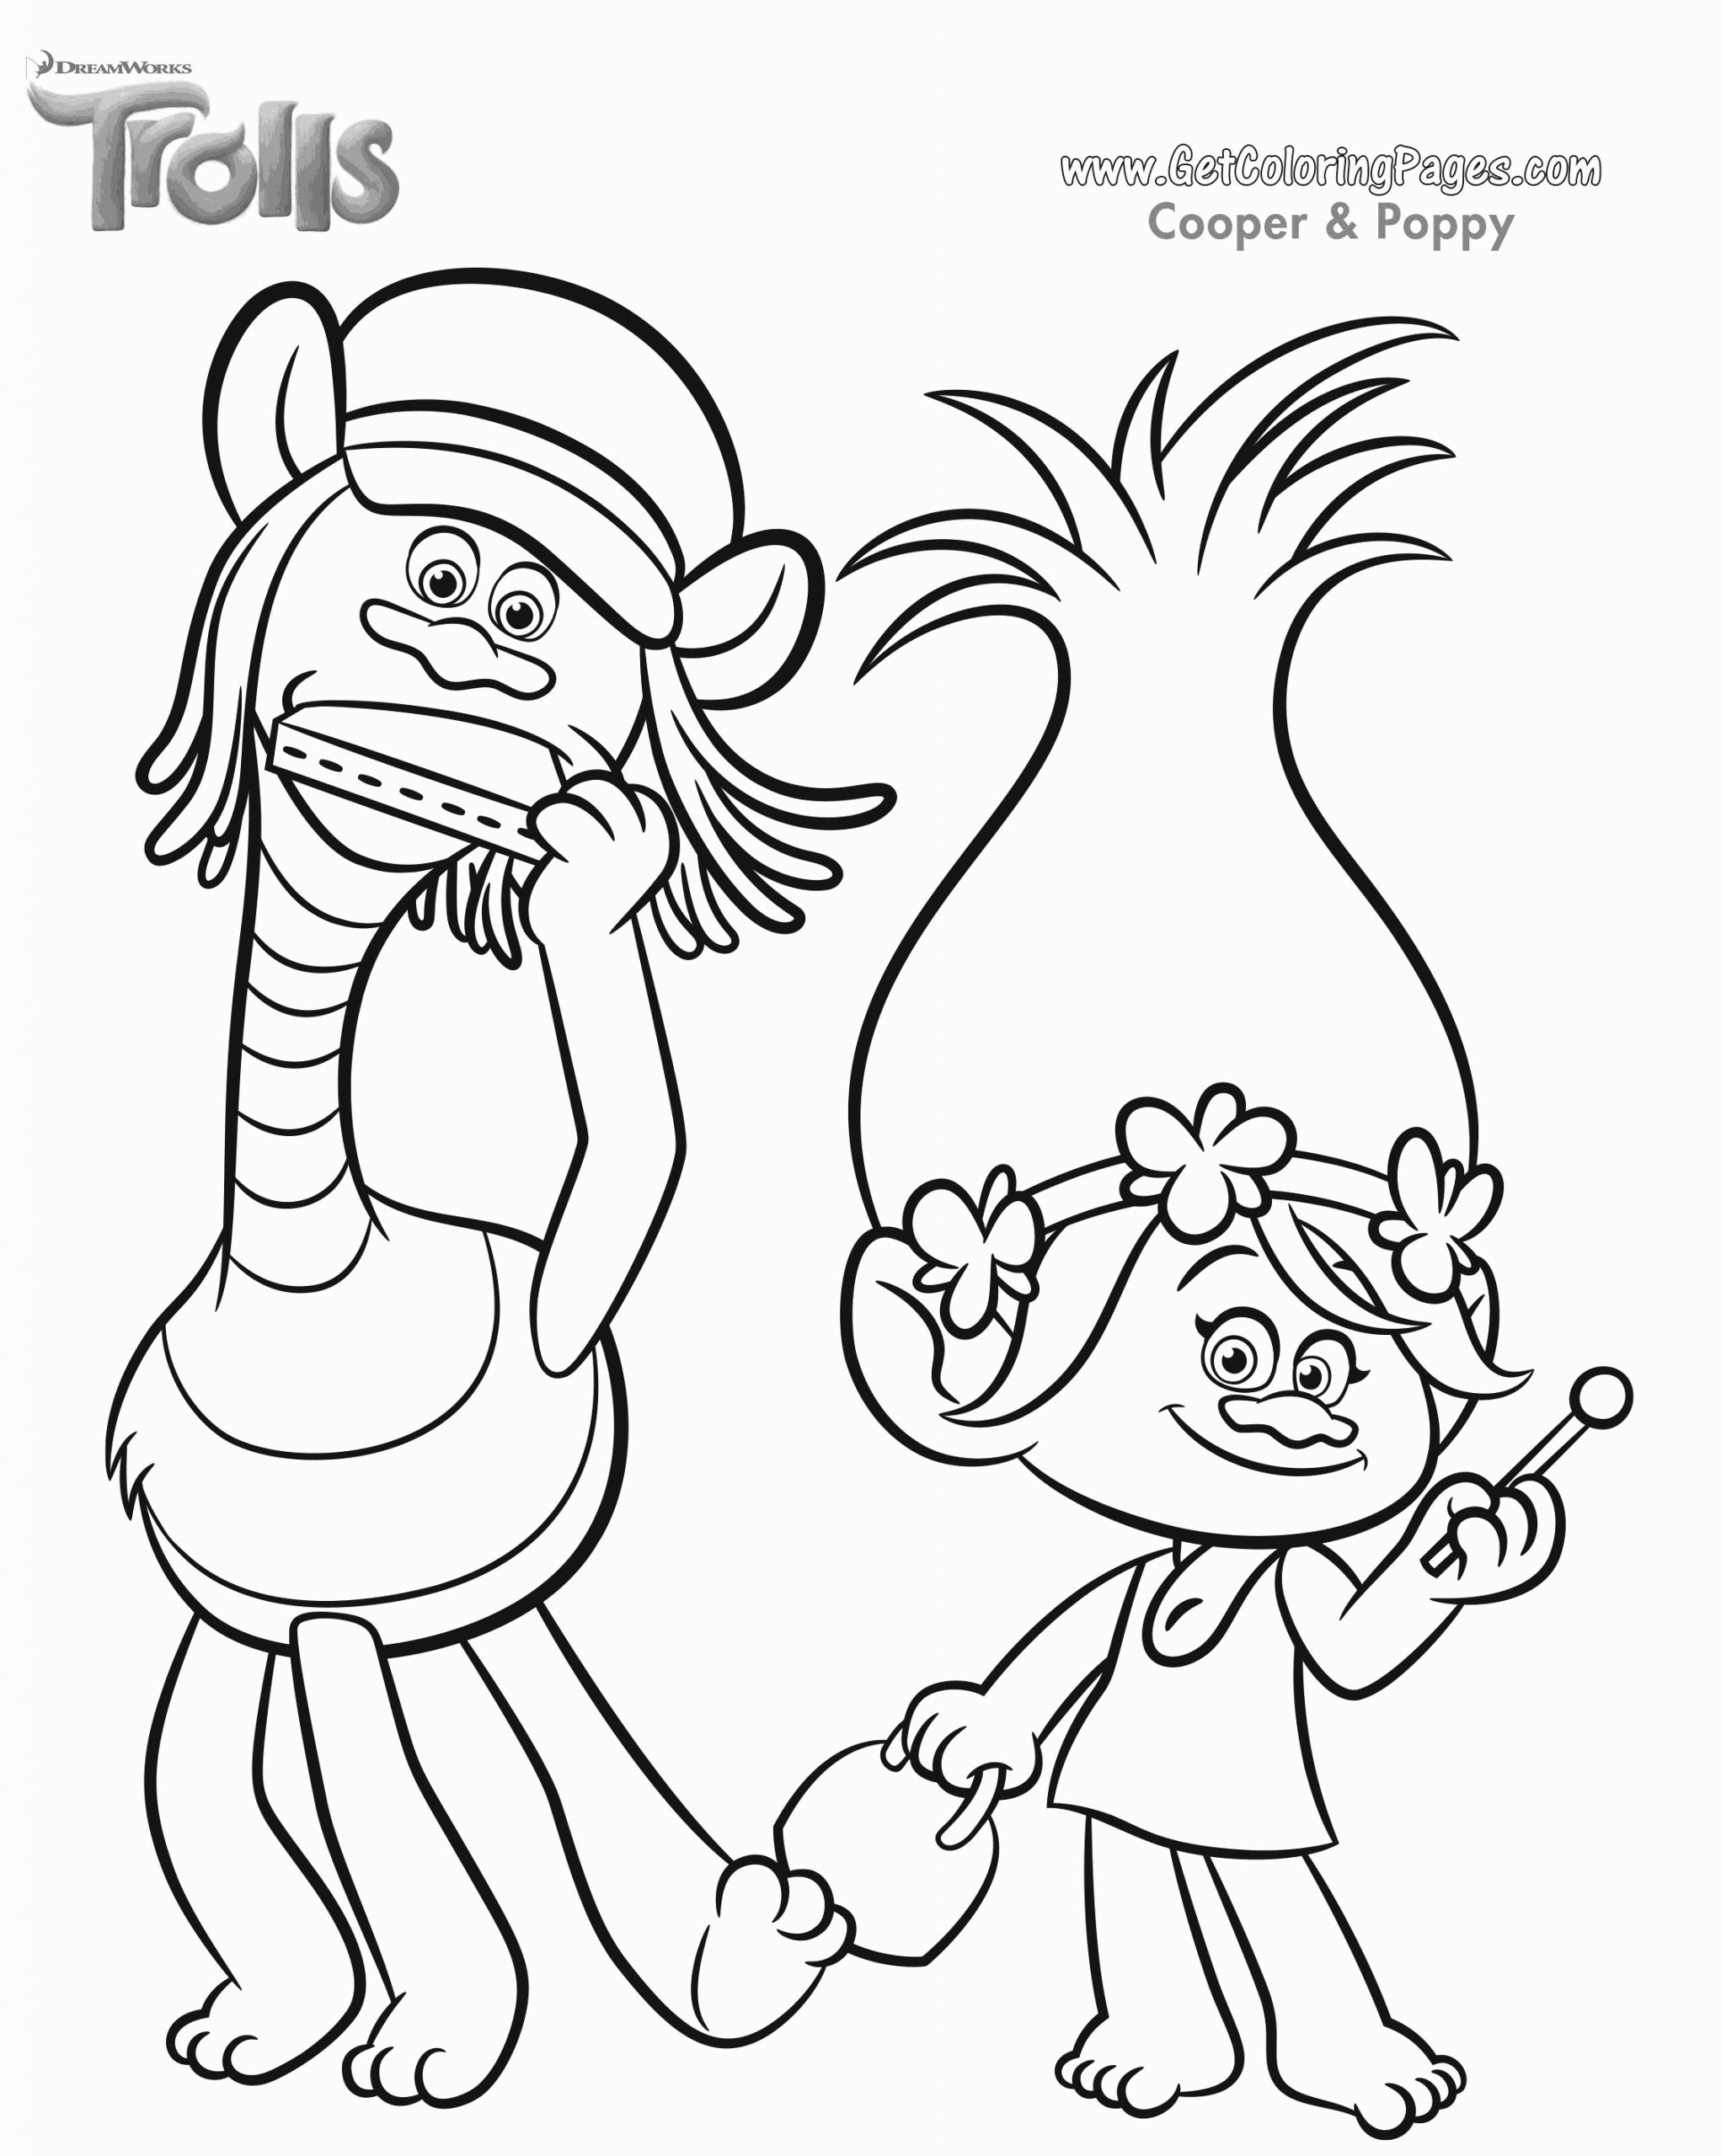 Dreamworks Trolls Coloring Book Unique Dreamworks Trolls Coloring Pages Getcoloringpages Color Cartoon Coloring Pages Disney Coloring Pages Poppy Coloring Page